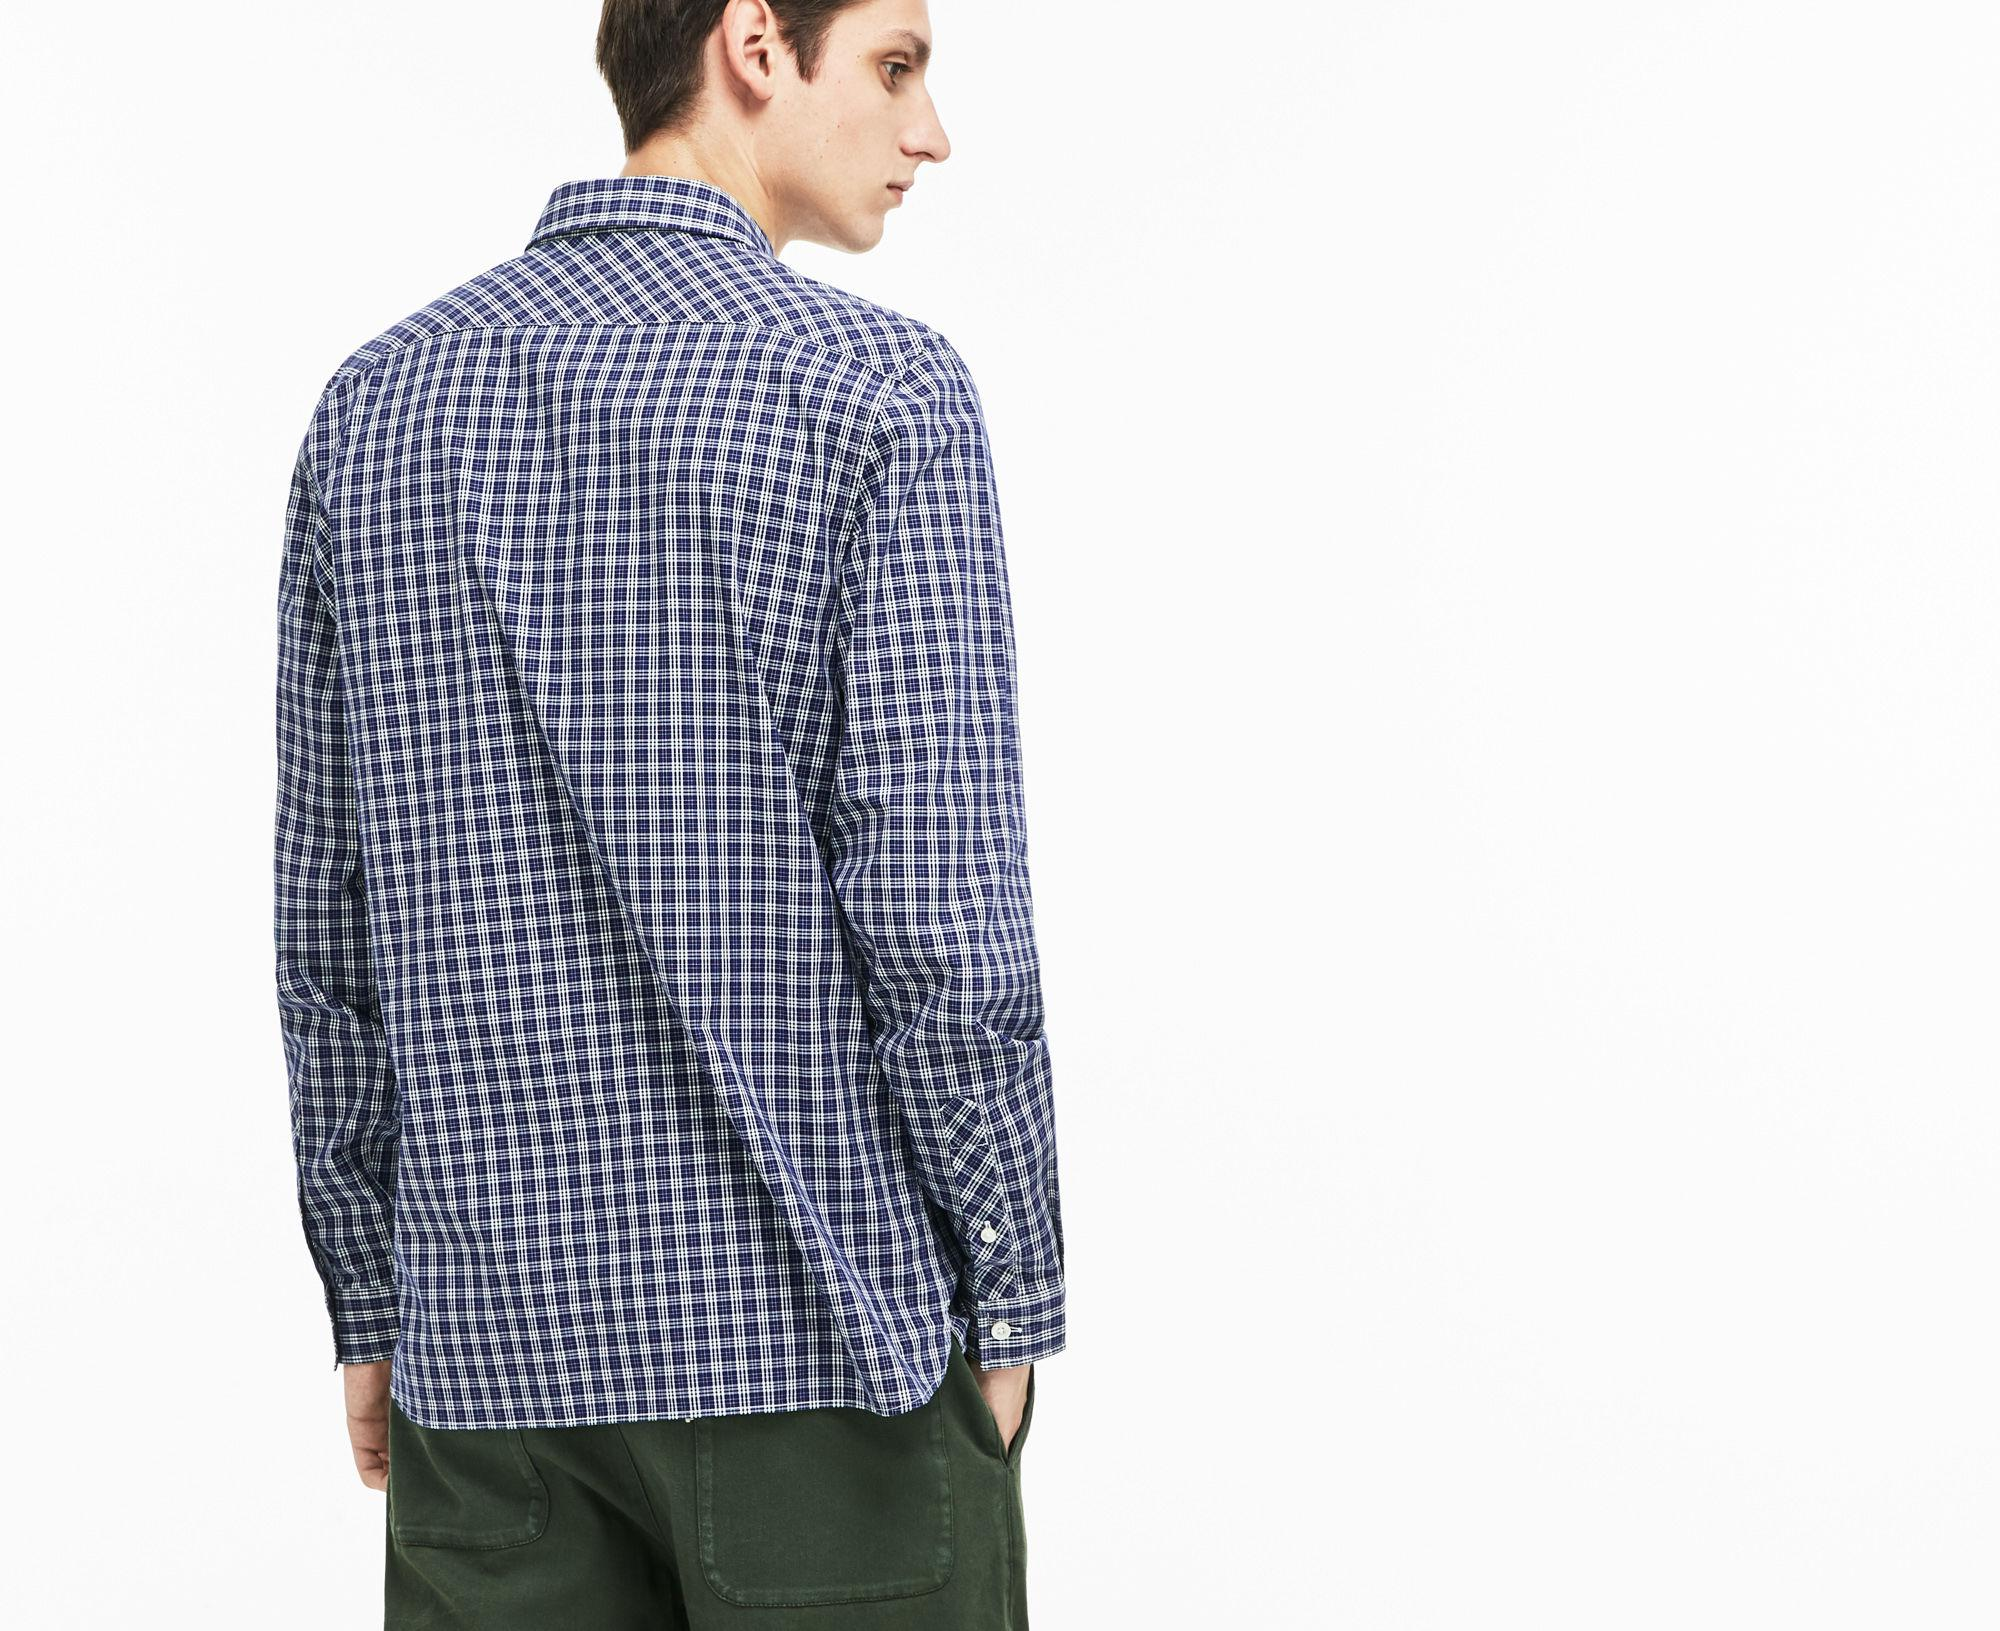 9be86e4ad96951 Lacoste - Blue Slim Fit Colored Check Stretch Cotton Poplin Shirt for Men -  Lyst. View fullscreen